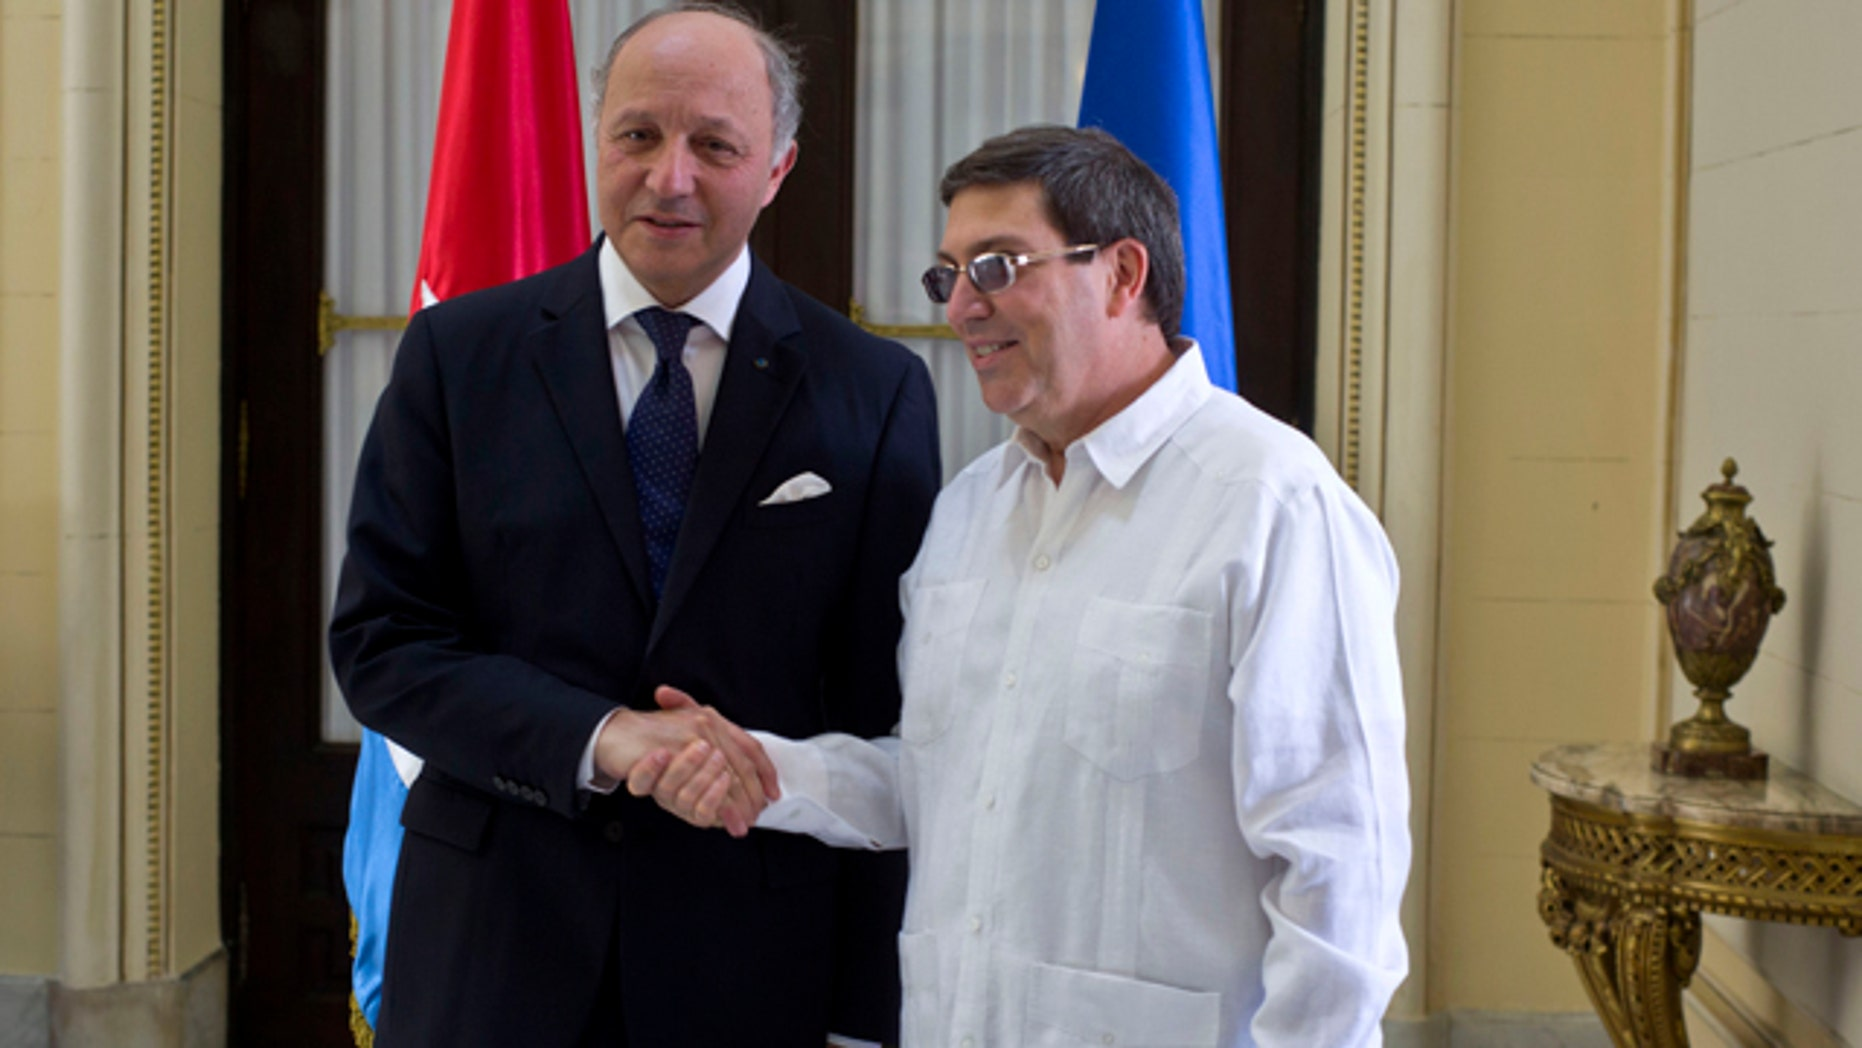 April 12, 2014: Cuba's Foreign Minister Bruno Rodriguez, right, and France's Foreign Minister Laurent Fabius shake hands toward photographers prior to their meeting at the Foreign Ministry in Havana, Cuba. (AP Photo/Ramon Espinosa)